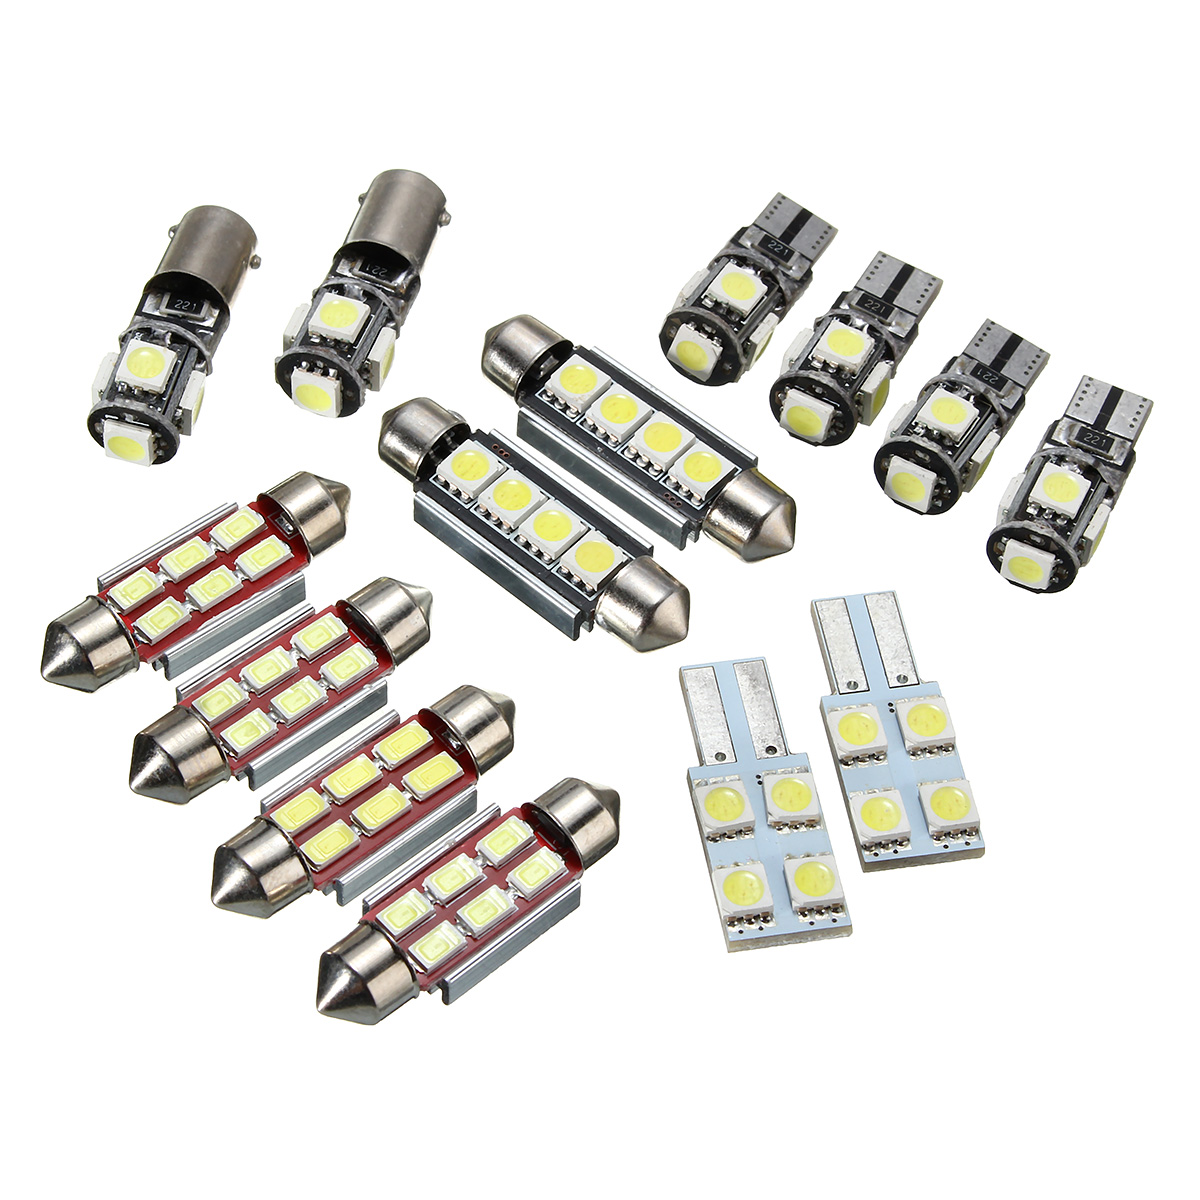 14Pcs T5 Car LED Interior Reading Lights Festoon Dome Bulb Kit W